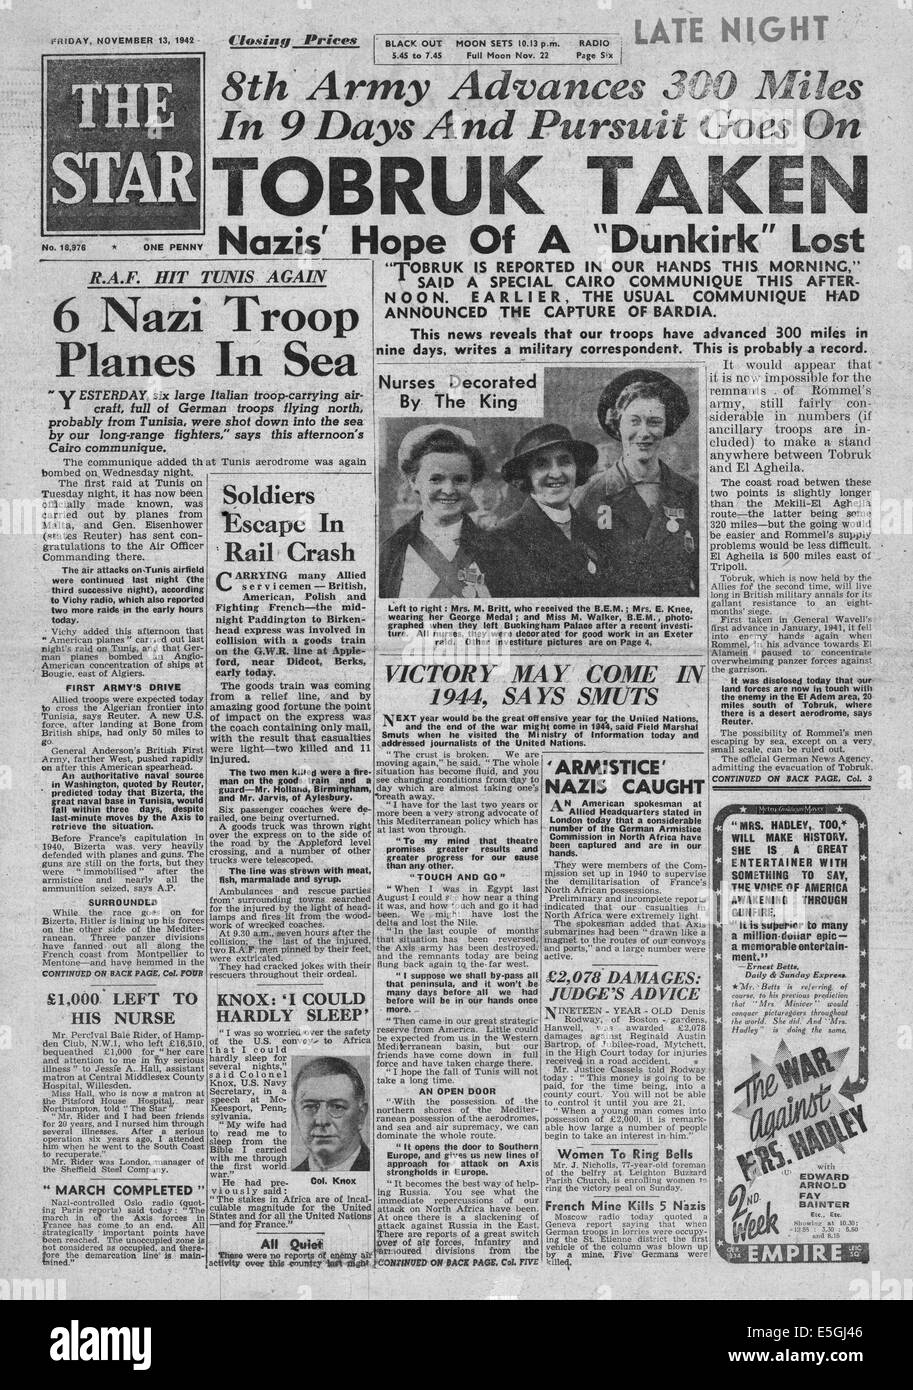 1942 The Star (London) front page reporting British 8th Army capture Tobruk - Stock Image